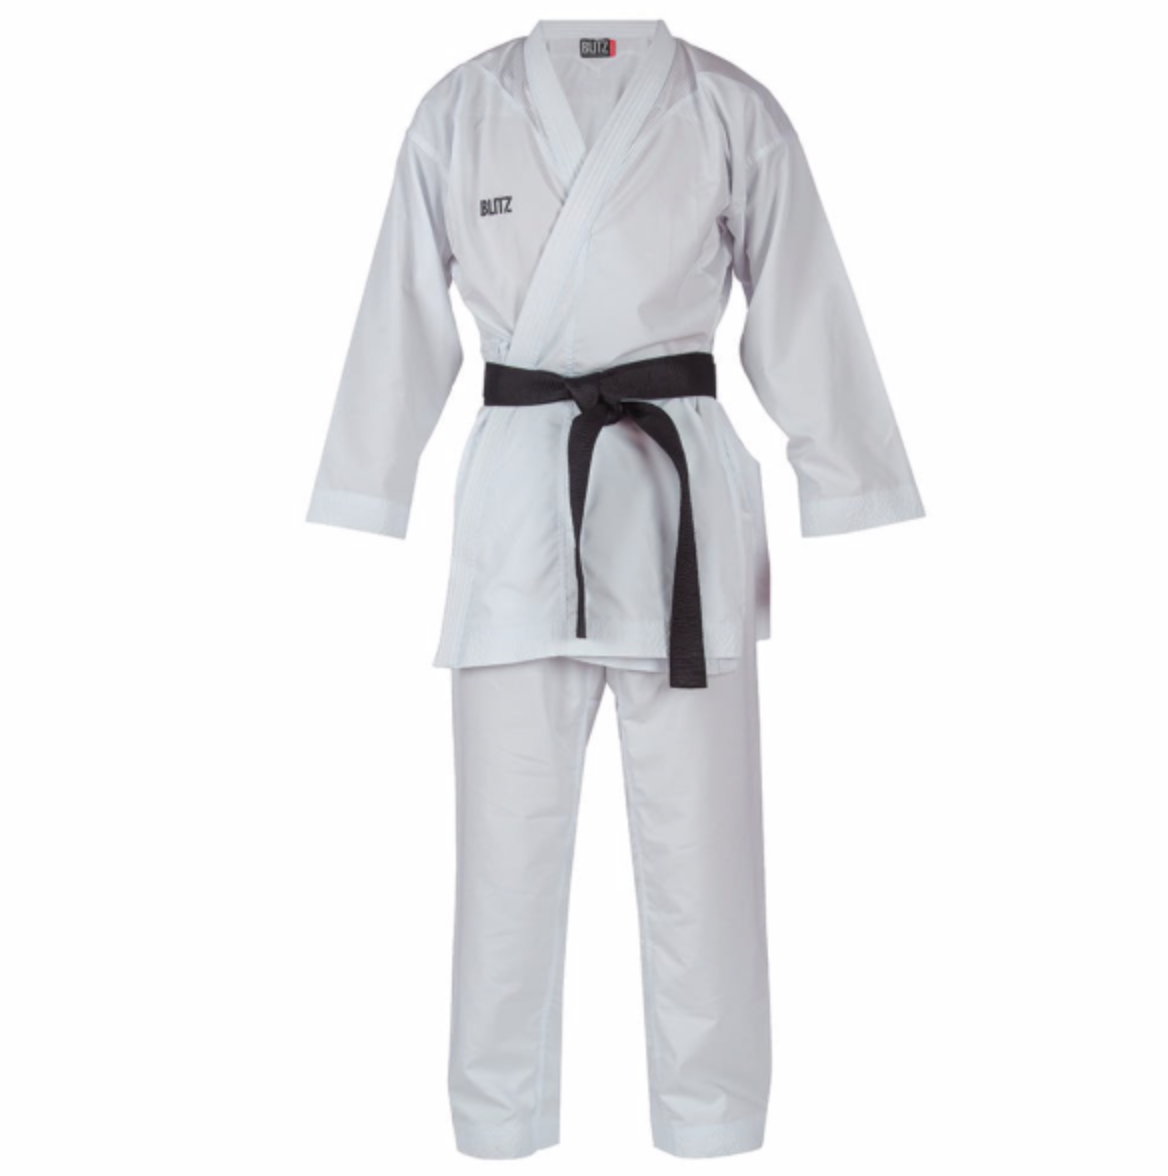 Sport Karate Fighters Specific Gi with JHKA badge